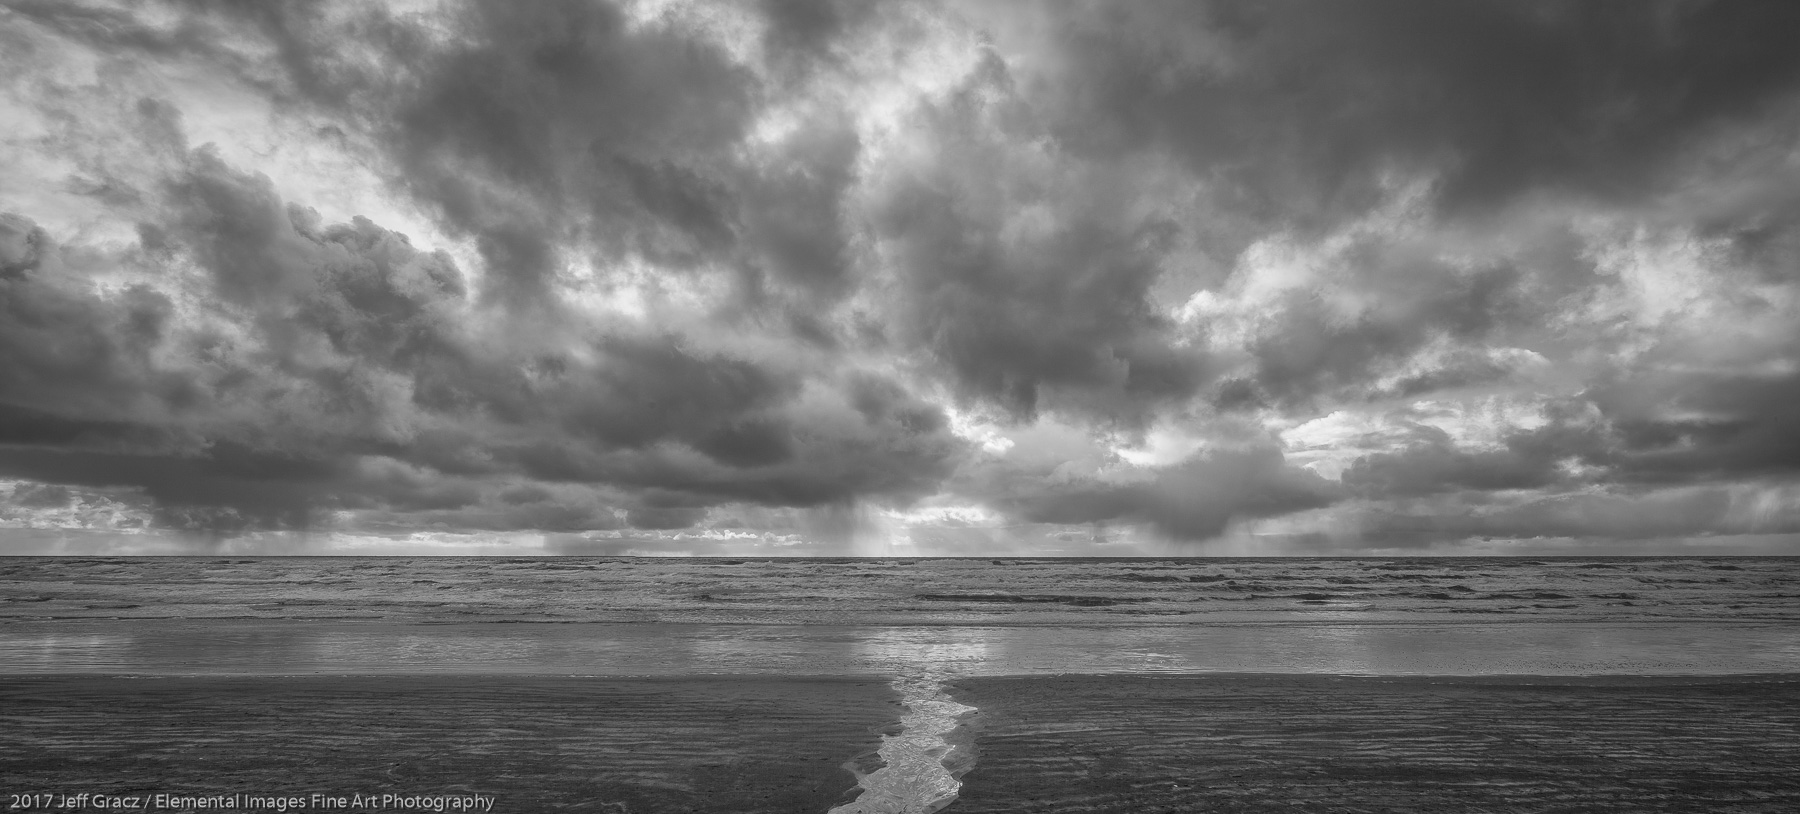 Stream, Surf and Sky | Cannon Beach | OR | USA - © 2017 Jeff Gracz / Elemental Images Fine Art Photography - All Rights Reserved Worldwide